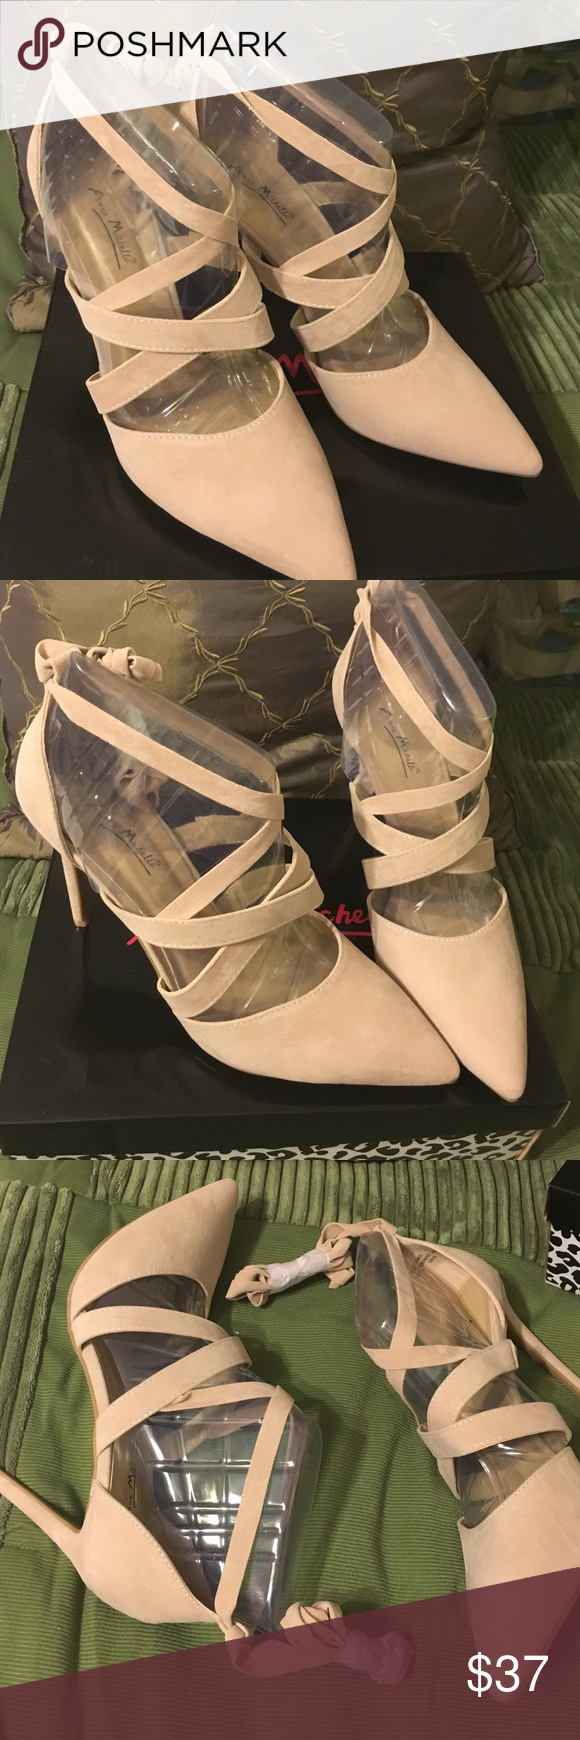 "BRAND NEW Anne Michelle beige suede like ankle tie Brand New never worn ankle tie up leg 4.5"" heels. Crisscross over instep for a stylish look. Sz 11 (41)  beige. Rampage Super cute!! Rampage Shoes Heels"